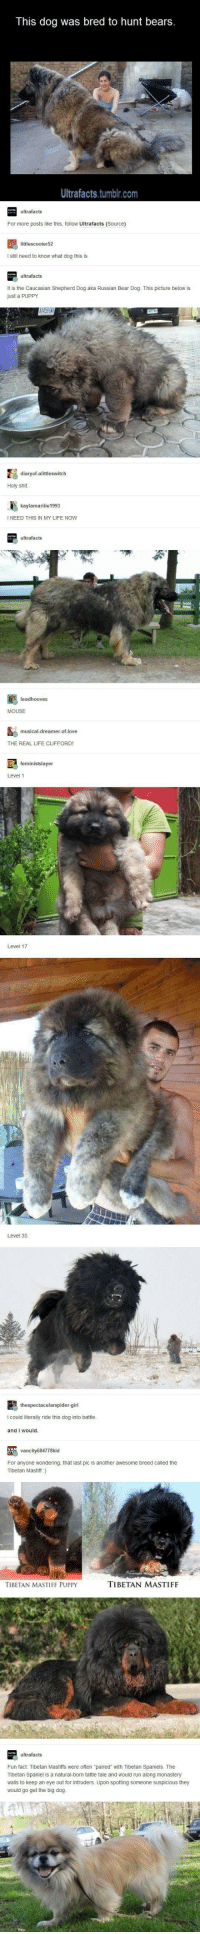 This dog was bred to hunt bears  Ultrafacts,tumbir.com  For more pos  thi falow Uttrafacts Coure  iniecooter5  t is the Cacasian Shephend Dog aka Russian Bear Dog This picture below  THE REAL LFE CLFFORD  Level 17  I could iteralily mde this dog into b  For anyone wondering, nat st pic is anoner avesone breed called the  oetan Mas  TISETAN MASTIFF PUPPY  TIBETAN MASTIFF  would po get thebo dg